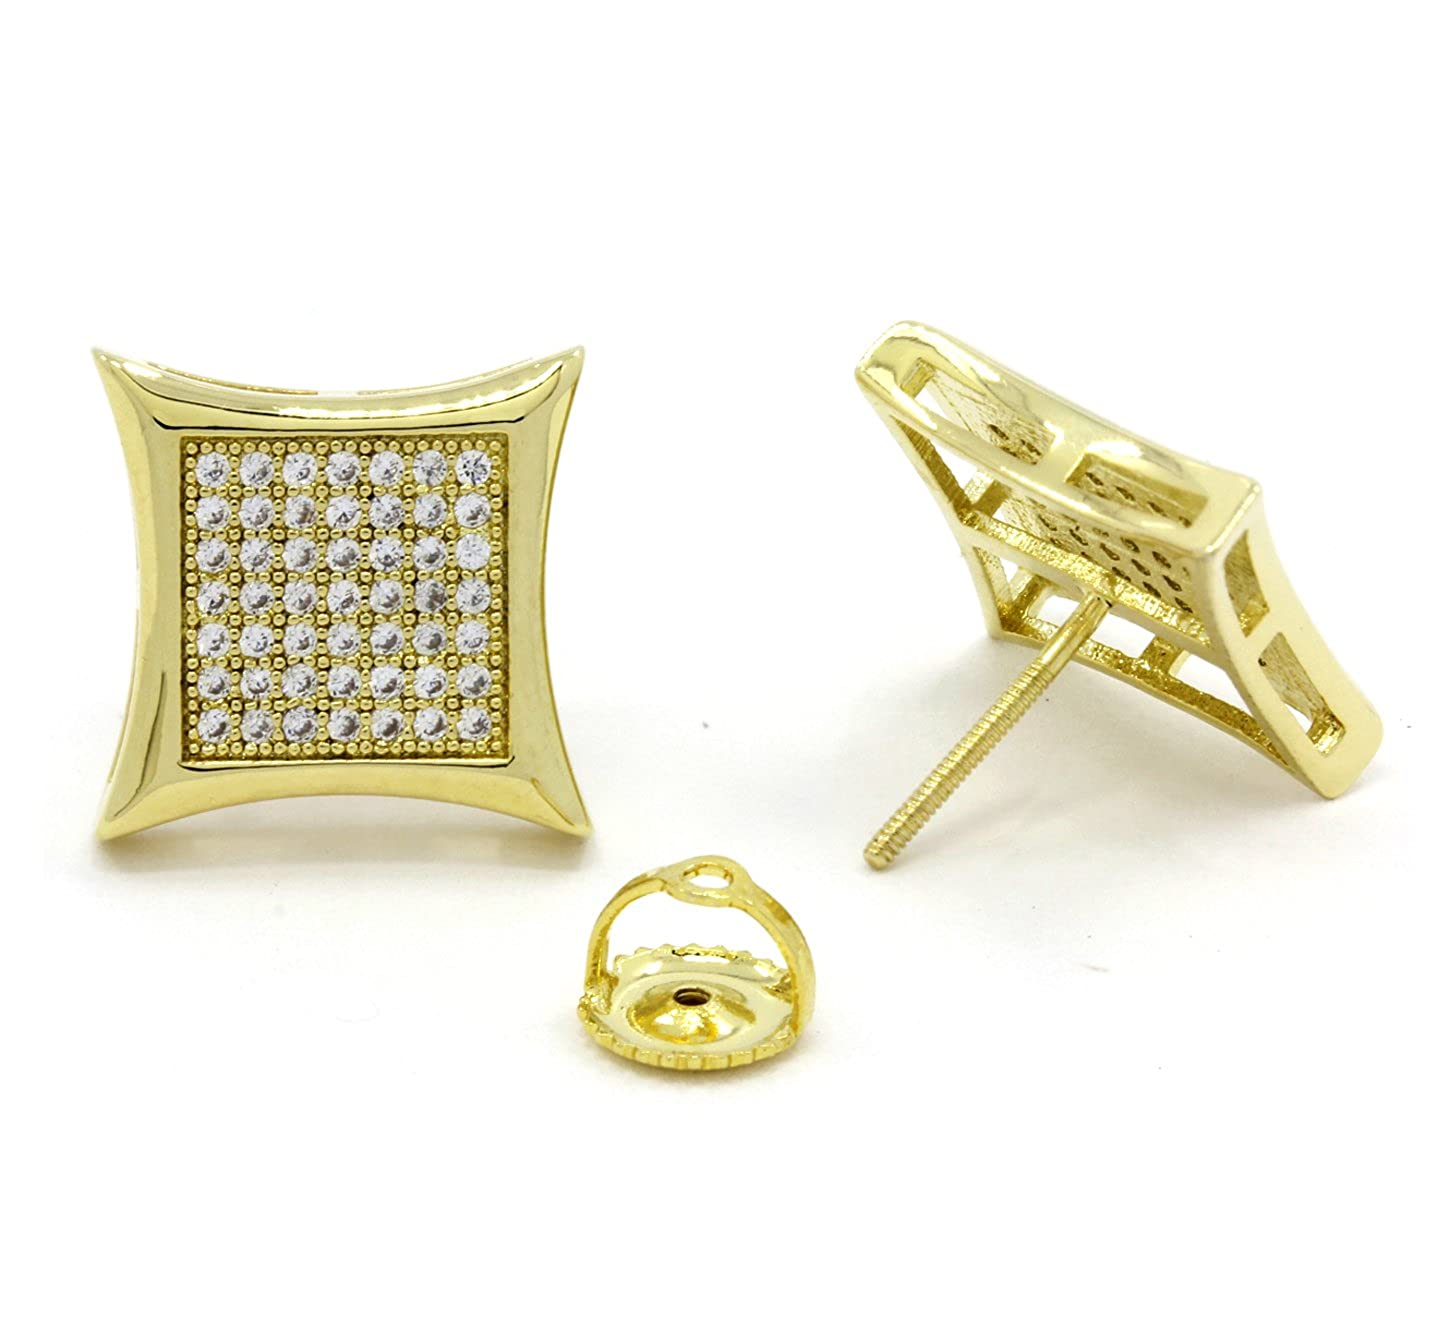 da9da4225 Amazon.com: Mens 10mm Gold Plated Cz Micro Pave Iced Out Hip Hop Large Kite  Stud Earrings Screw Backs (7 Lines): Jewelry